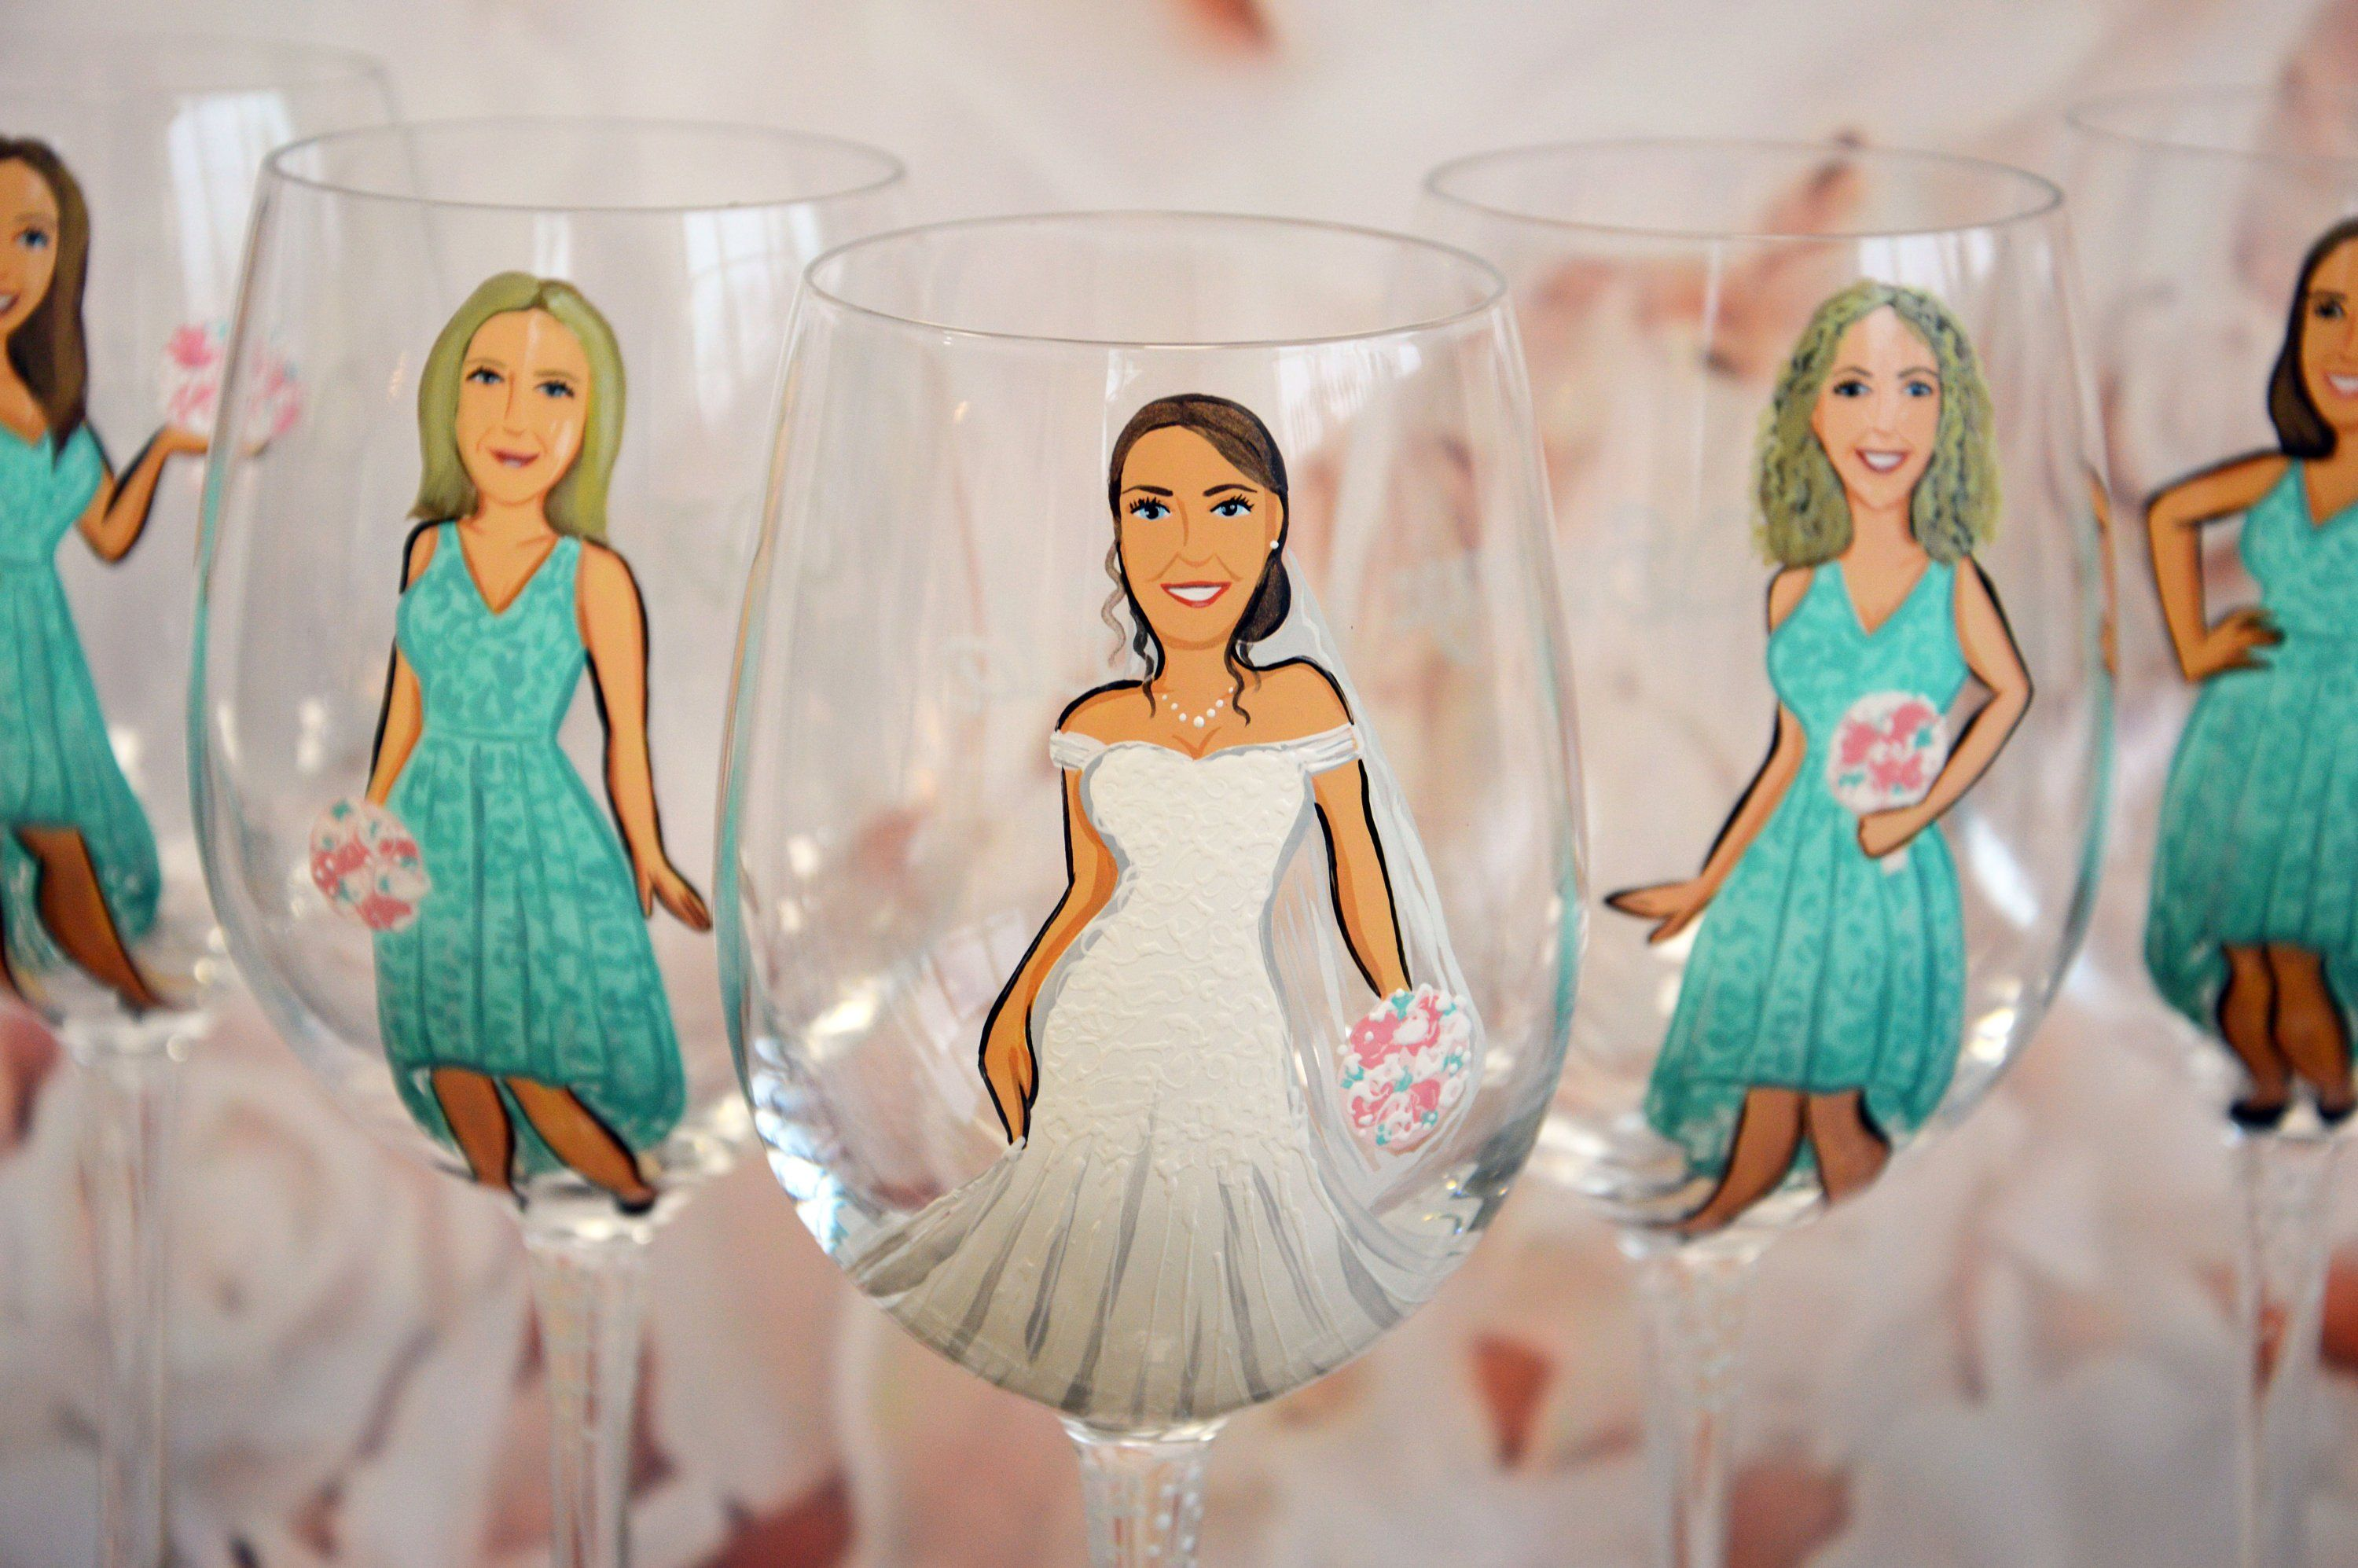 Bridal shower party bachelorette party bridesmaid gifts